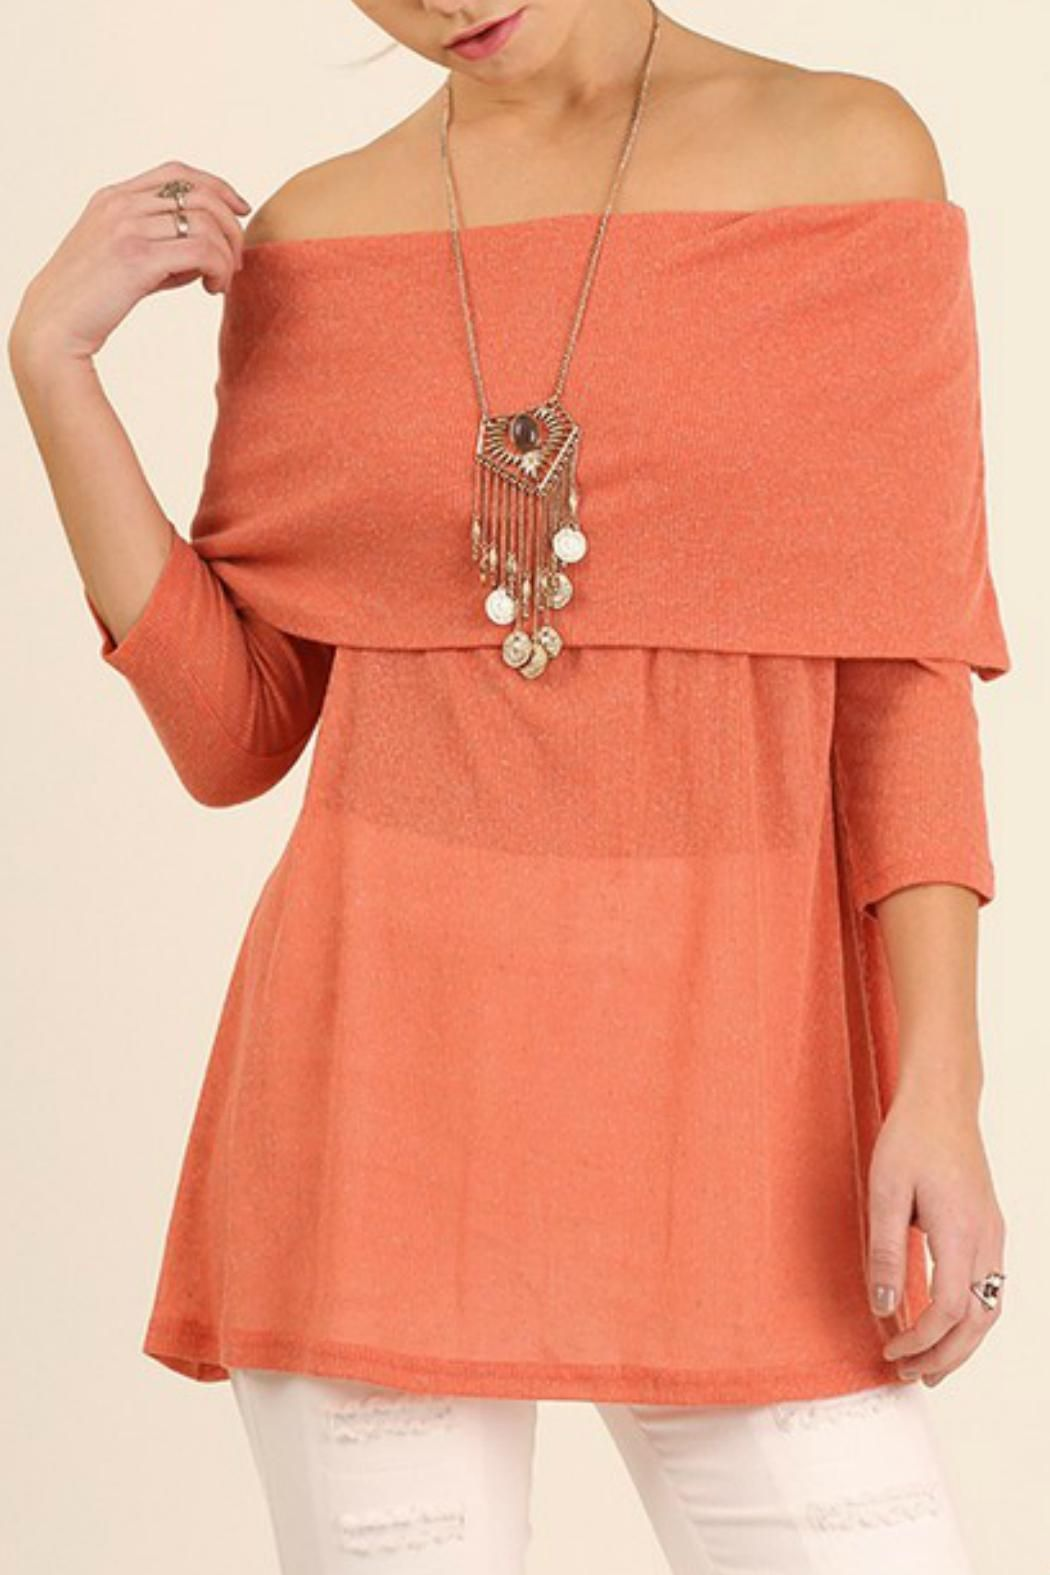 6be1e0be4c501 This off-the-shoulder top features a lightweight rib-knit in a fun